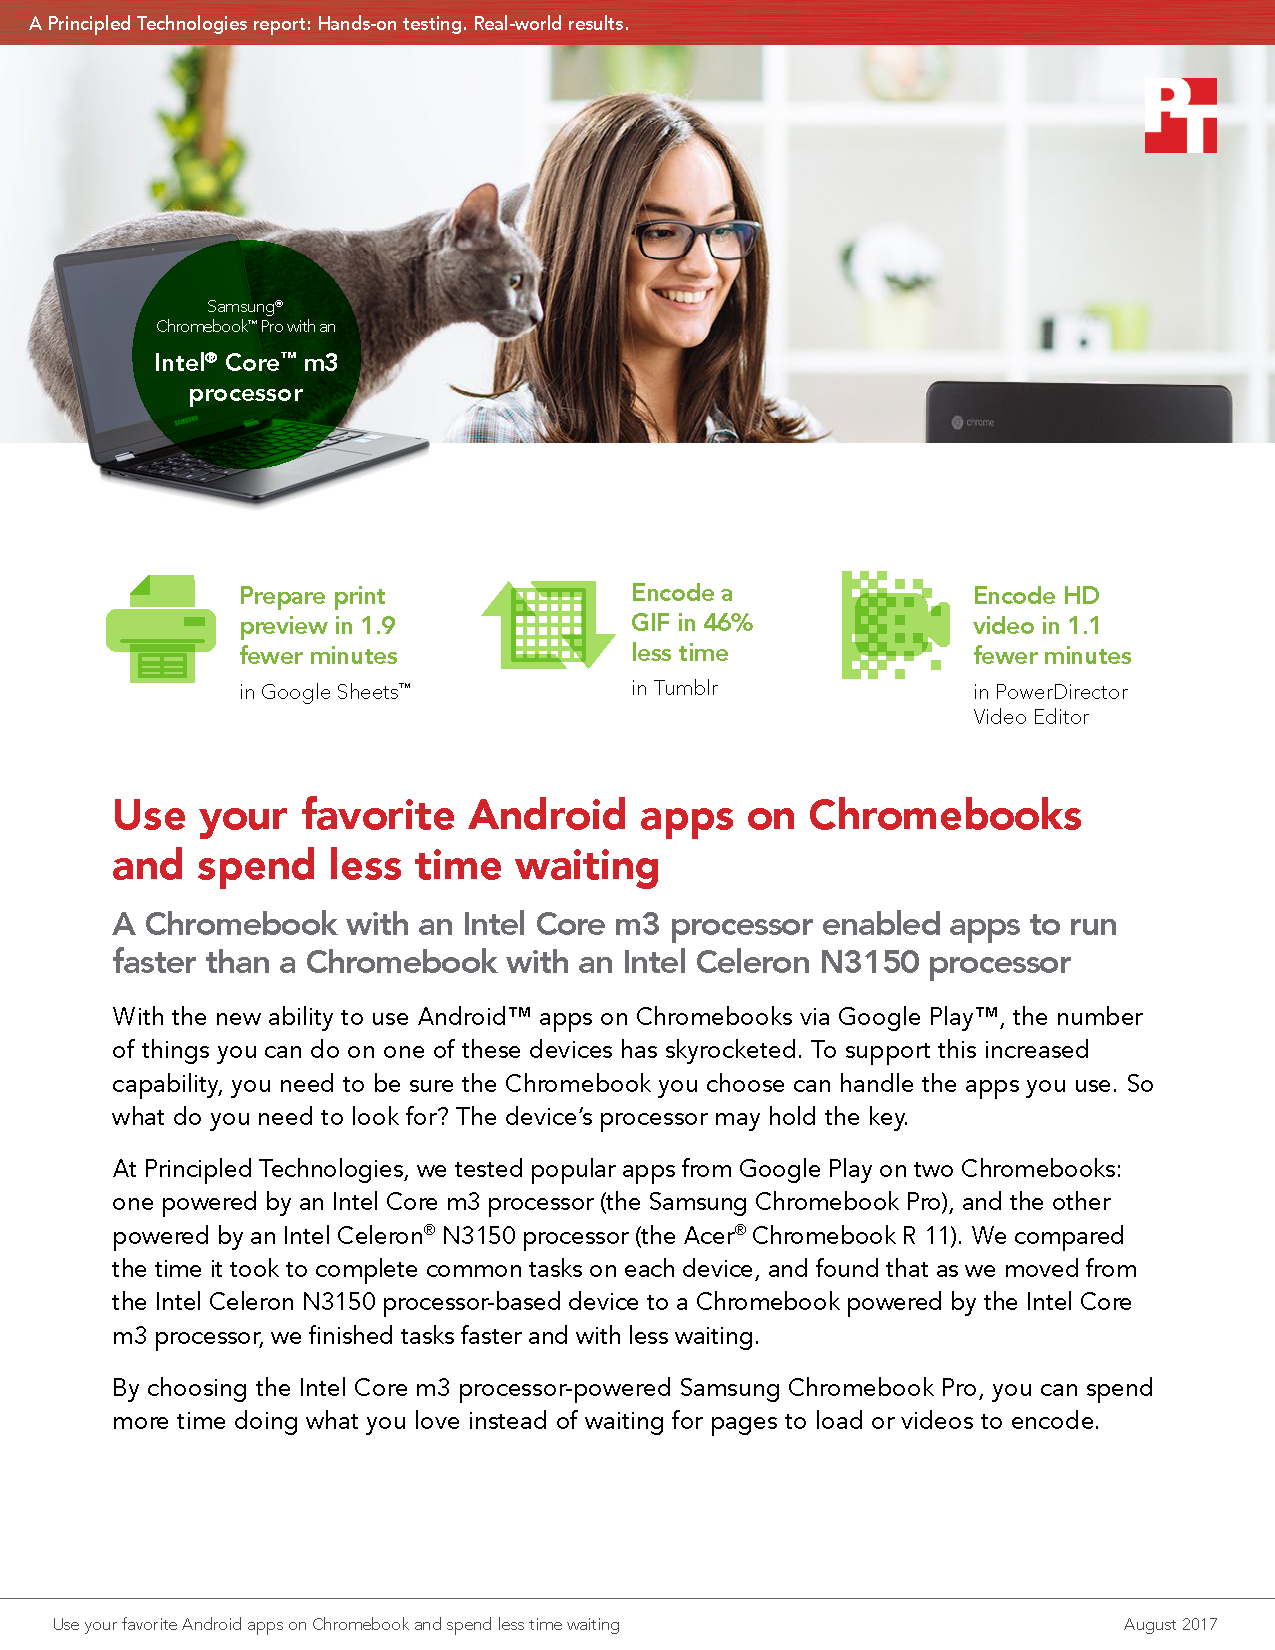 Common Tasks Took Less Time with a Chromebook Powered by an